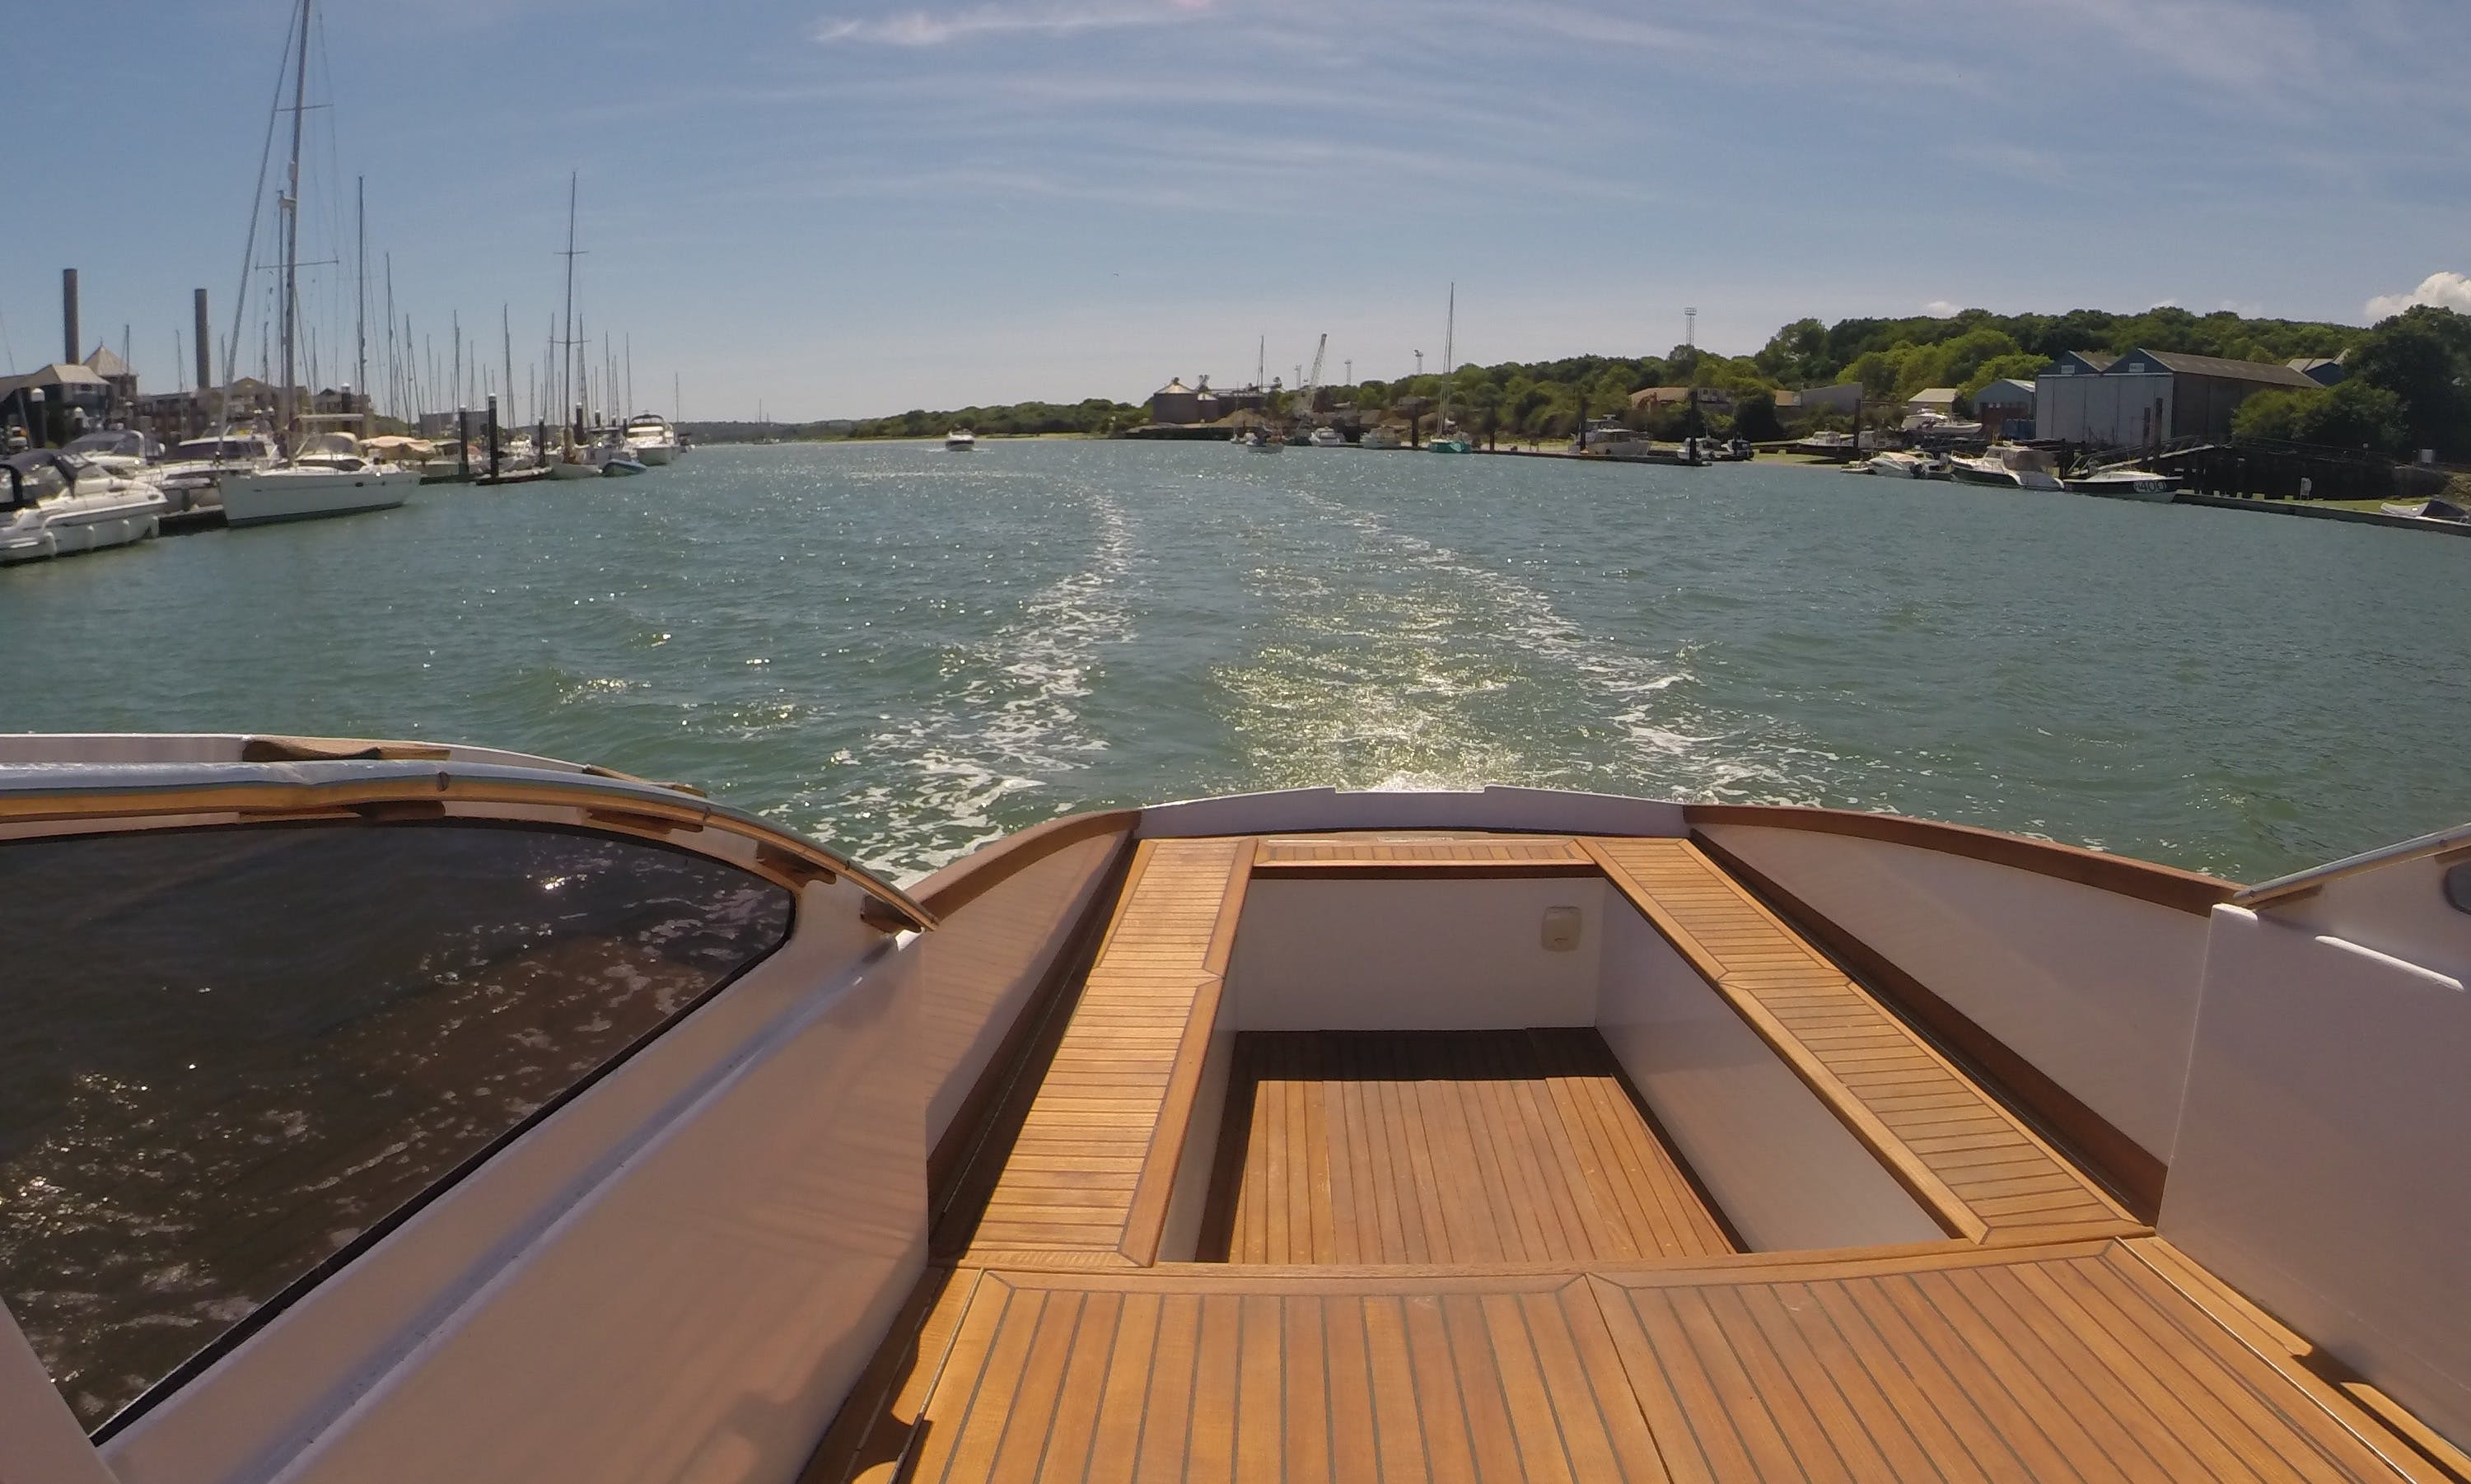 Classic British Powerboat skippered - Charter in the Solent